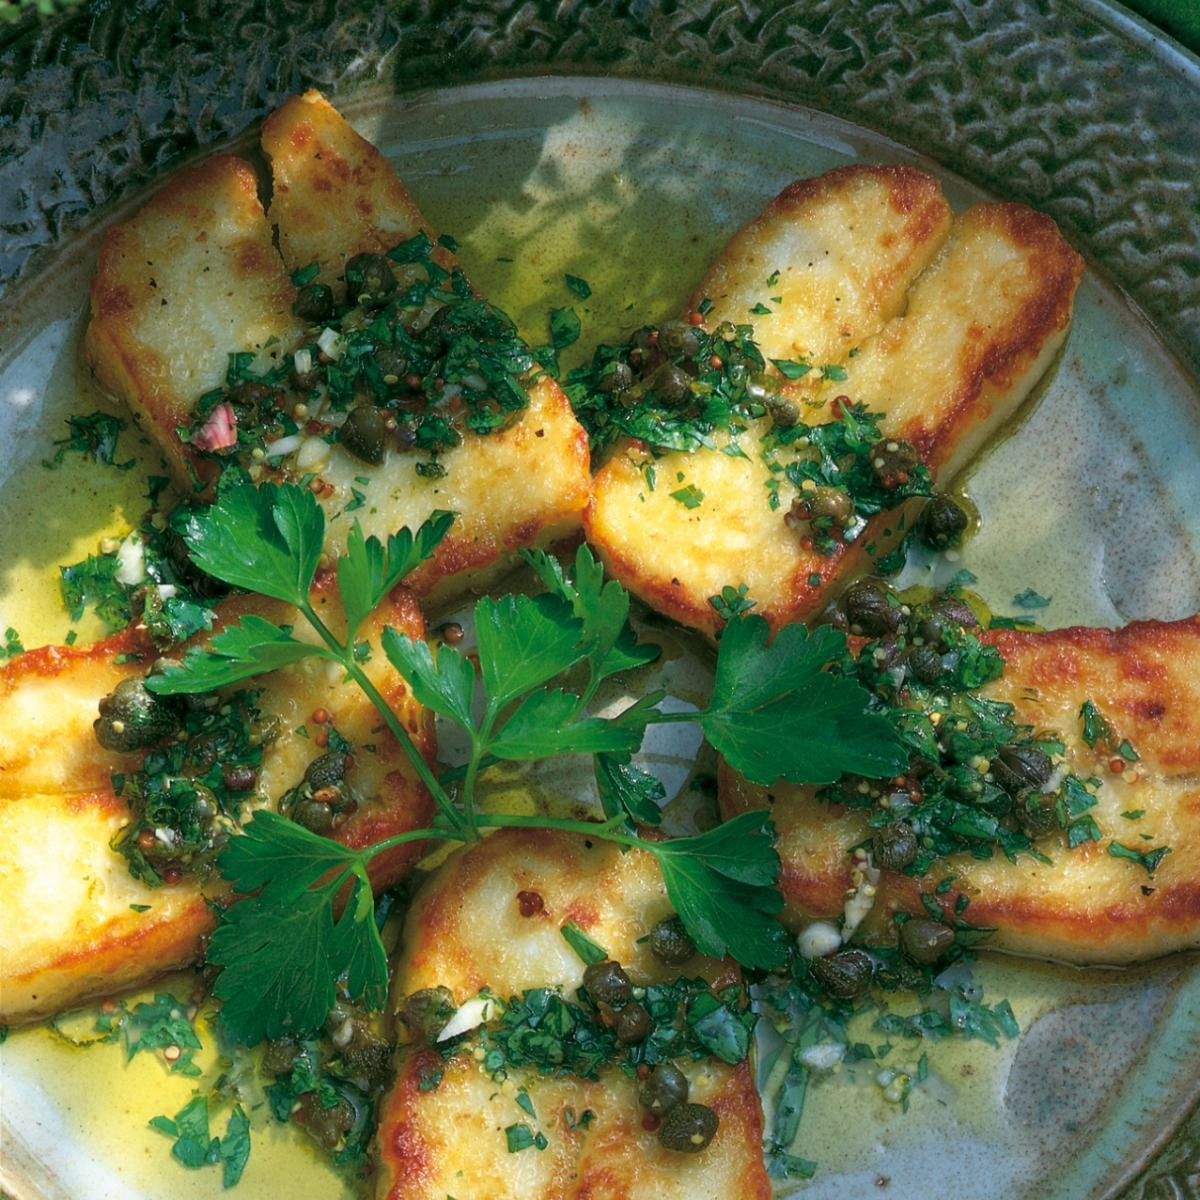 Summer fried halloumi cheese with lime and caper vinaigrette